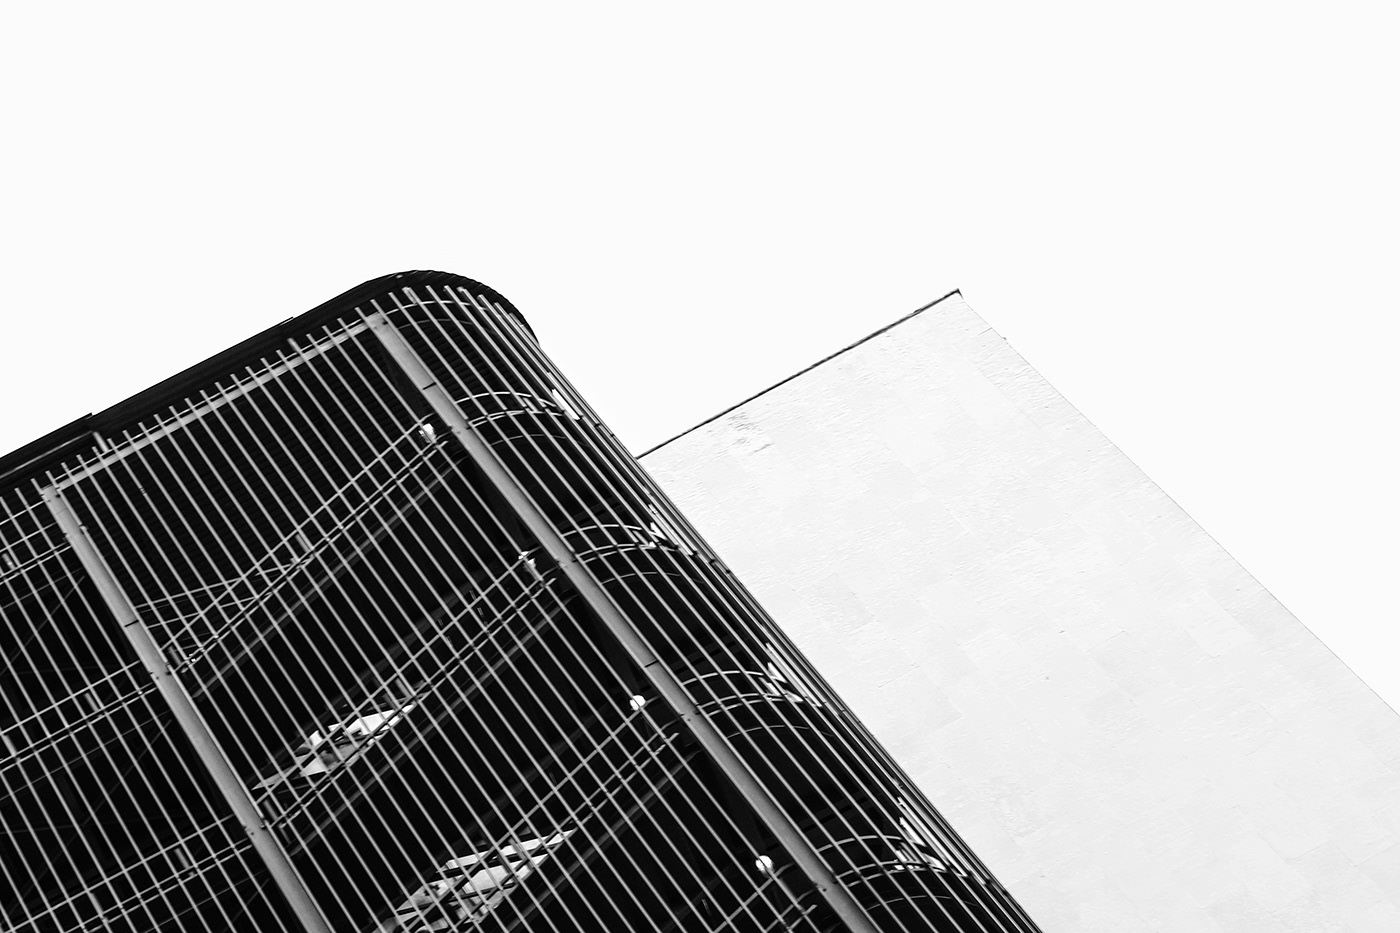 angle bn building contrast light lines Perspective Photography  textures vanishingpoint